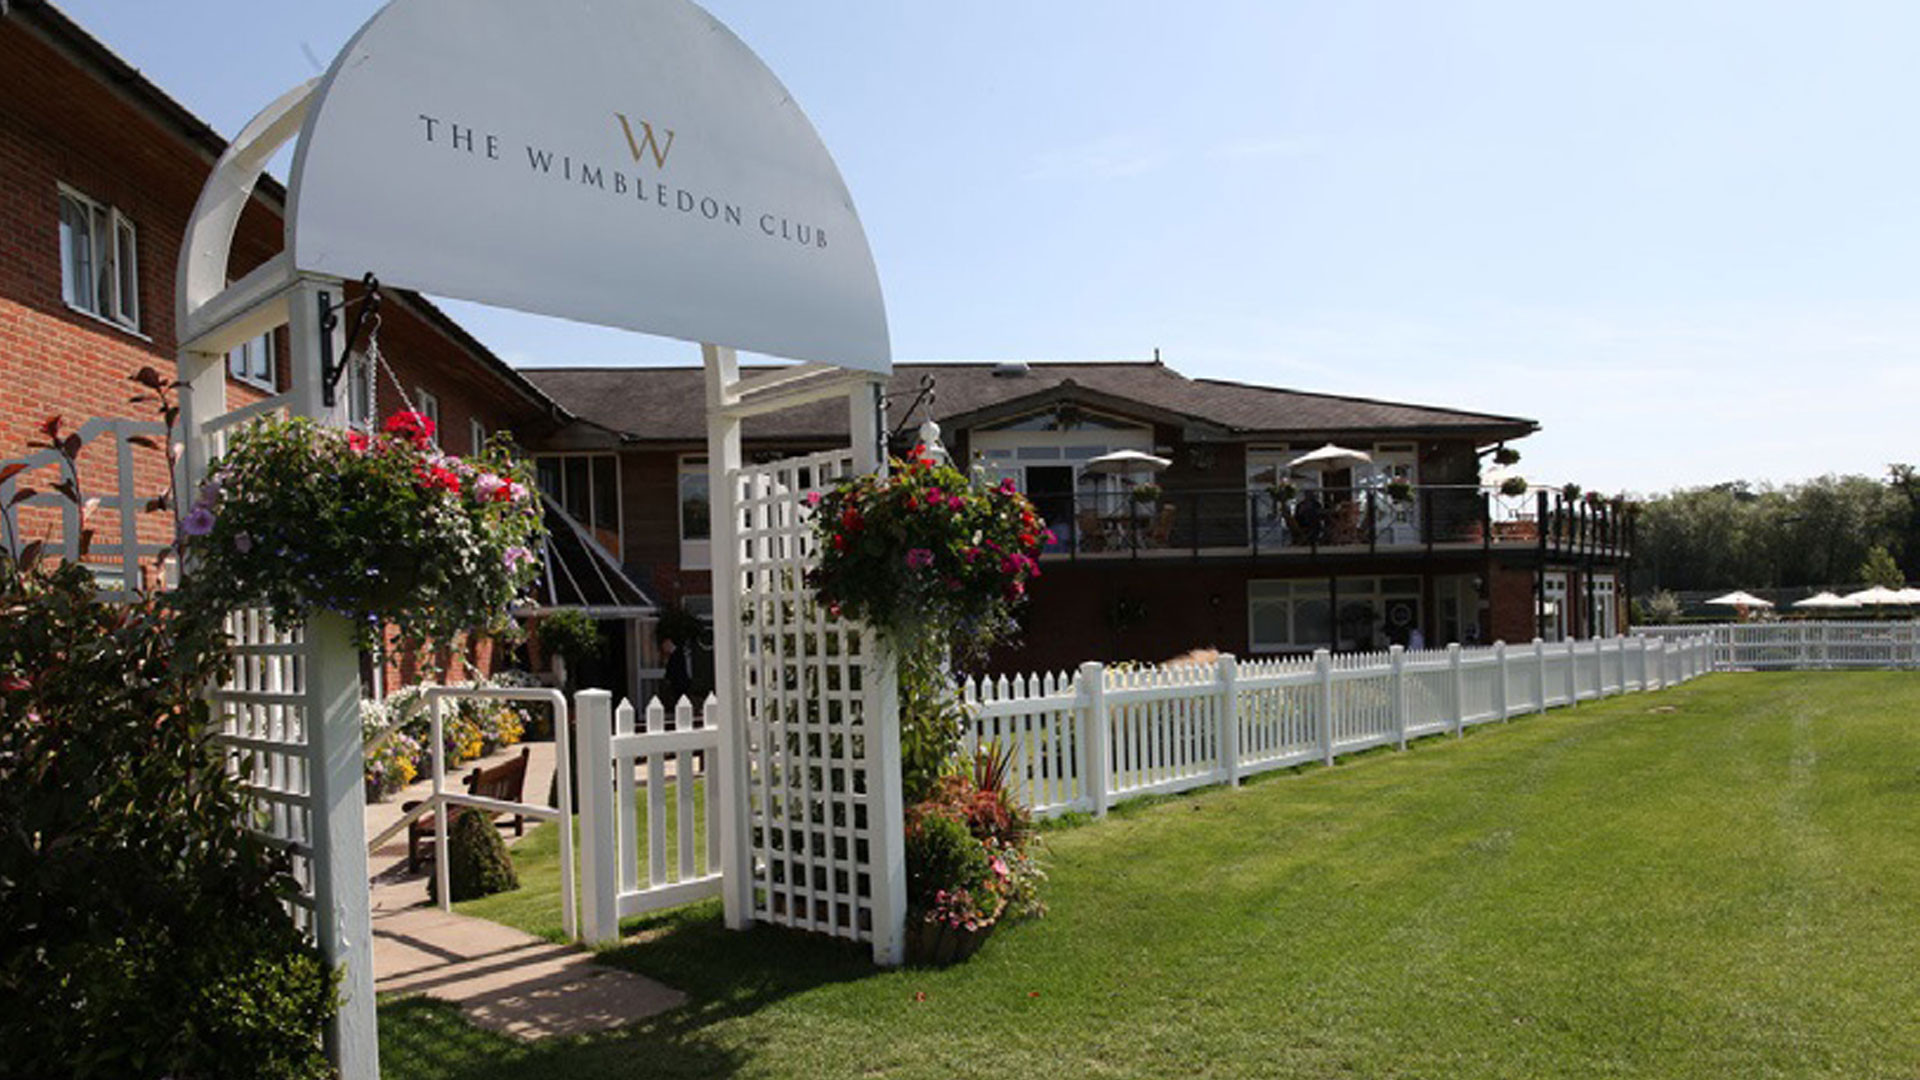 The Wimbledon Club is a great hospitality option for your guests